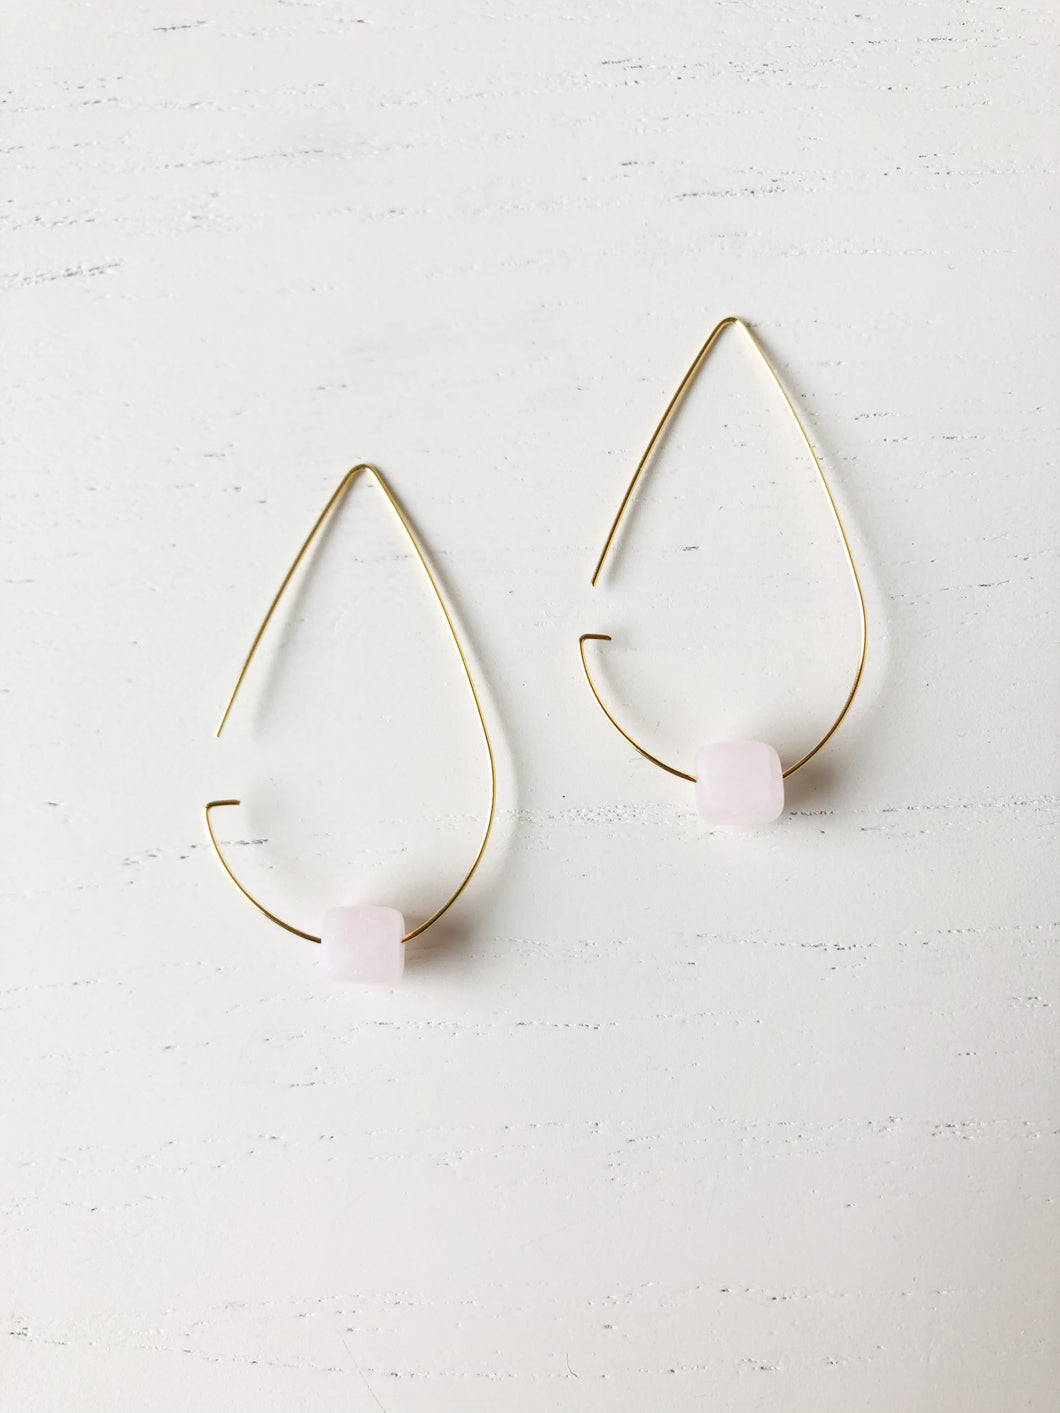 Brass Tear Drop Threader Earrings - Rose Quartz - Gold